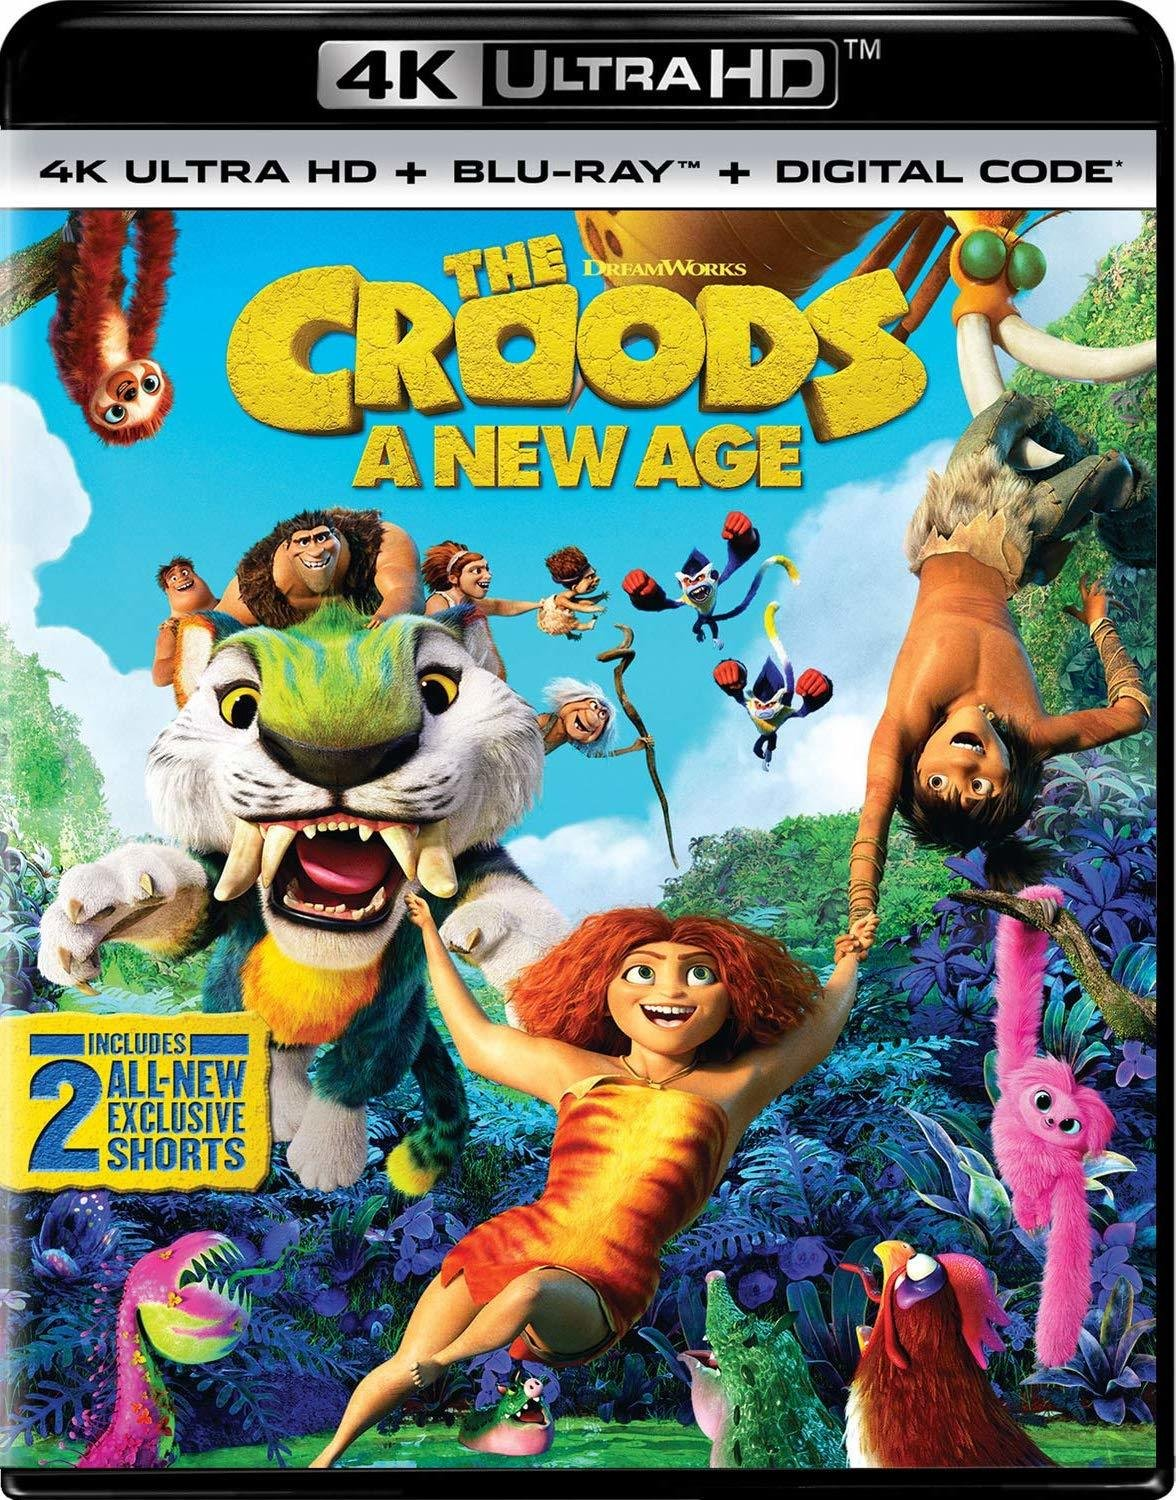 The Croods: A New Age poster image